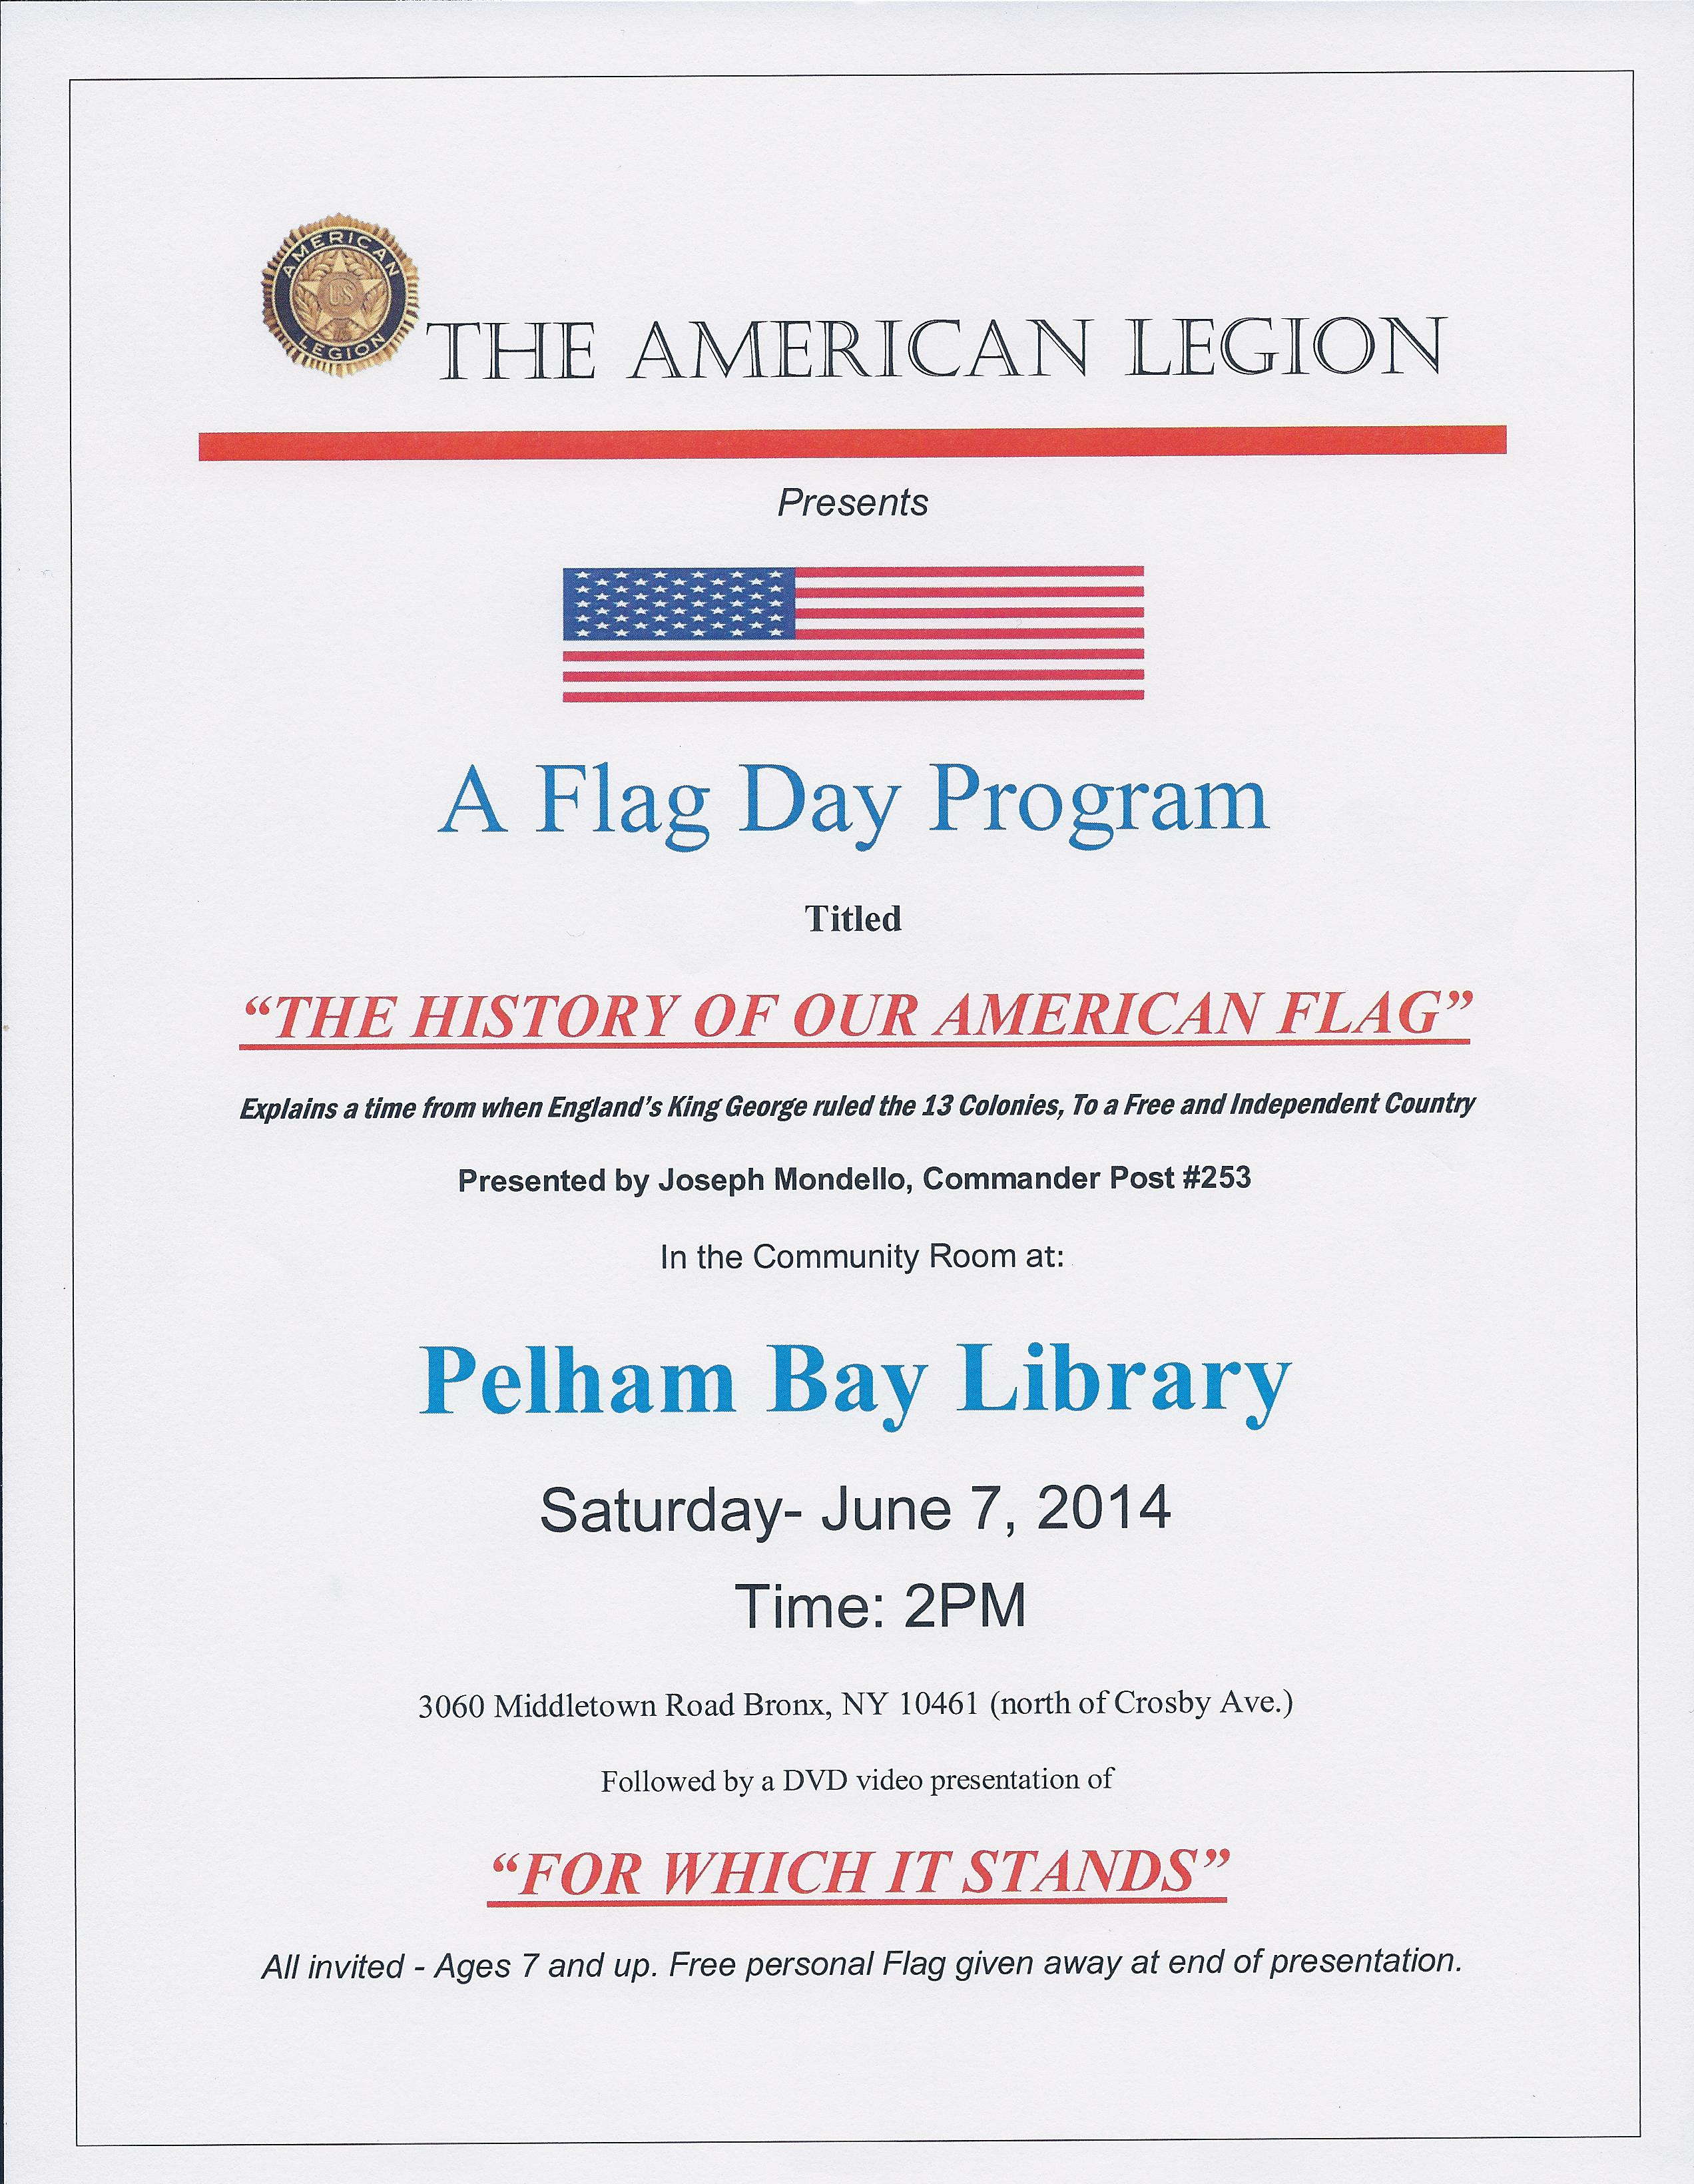 PM_6.7.14_History_of_the_American_Flag